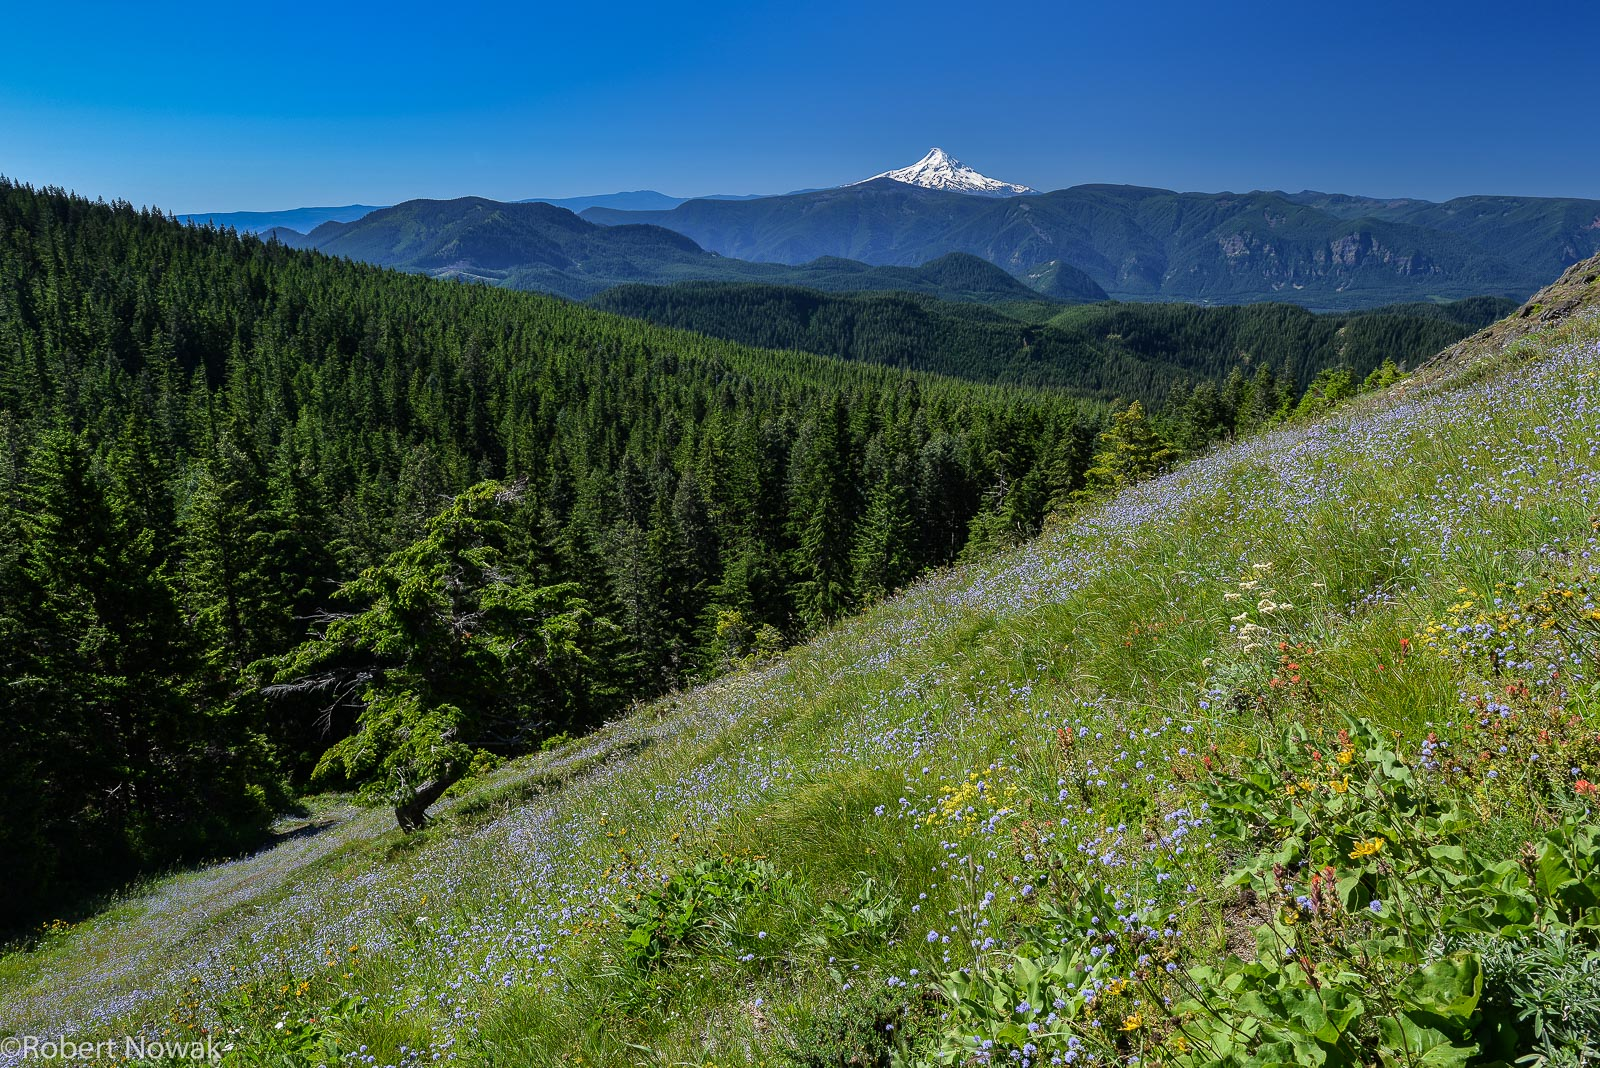 Mt. Hood, Gifford Pinchot National Forest, Washington, Grassy Knoll, Cascade, summer, photo